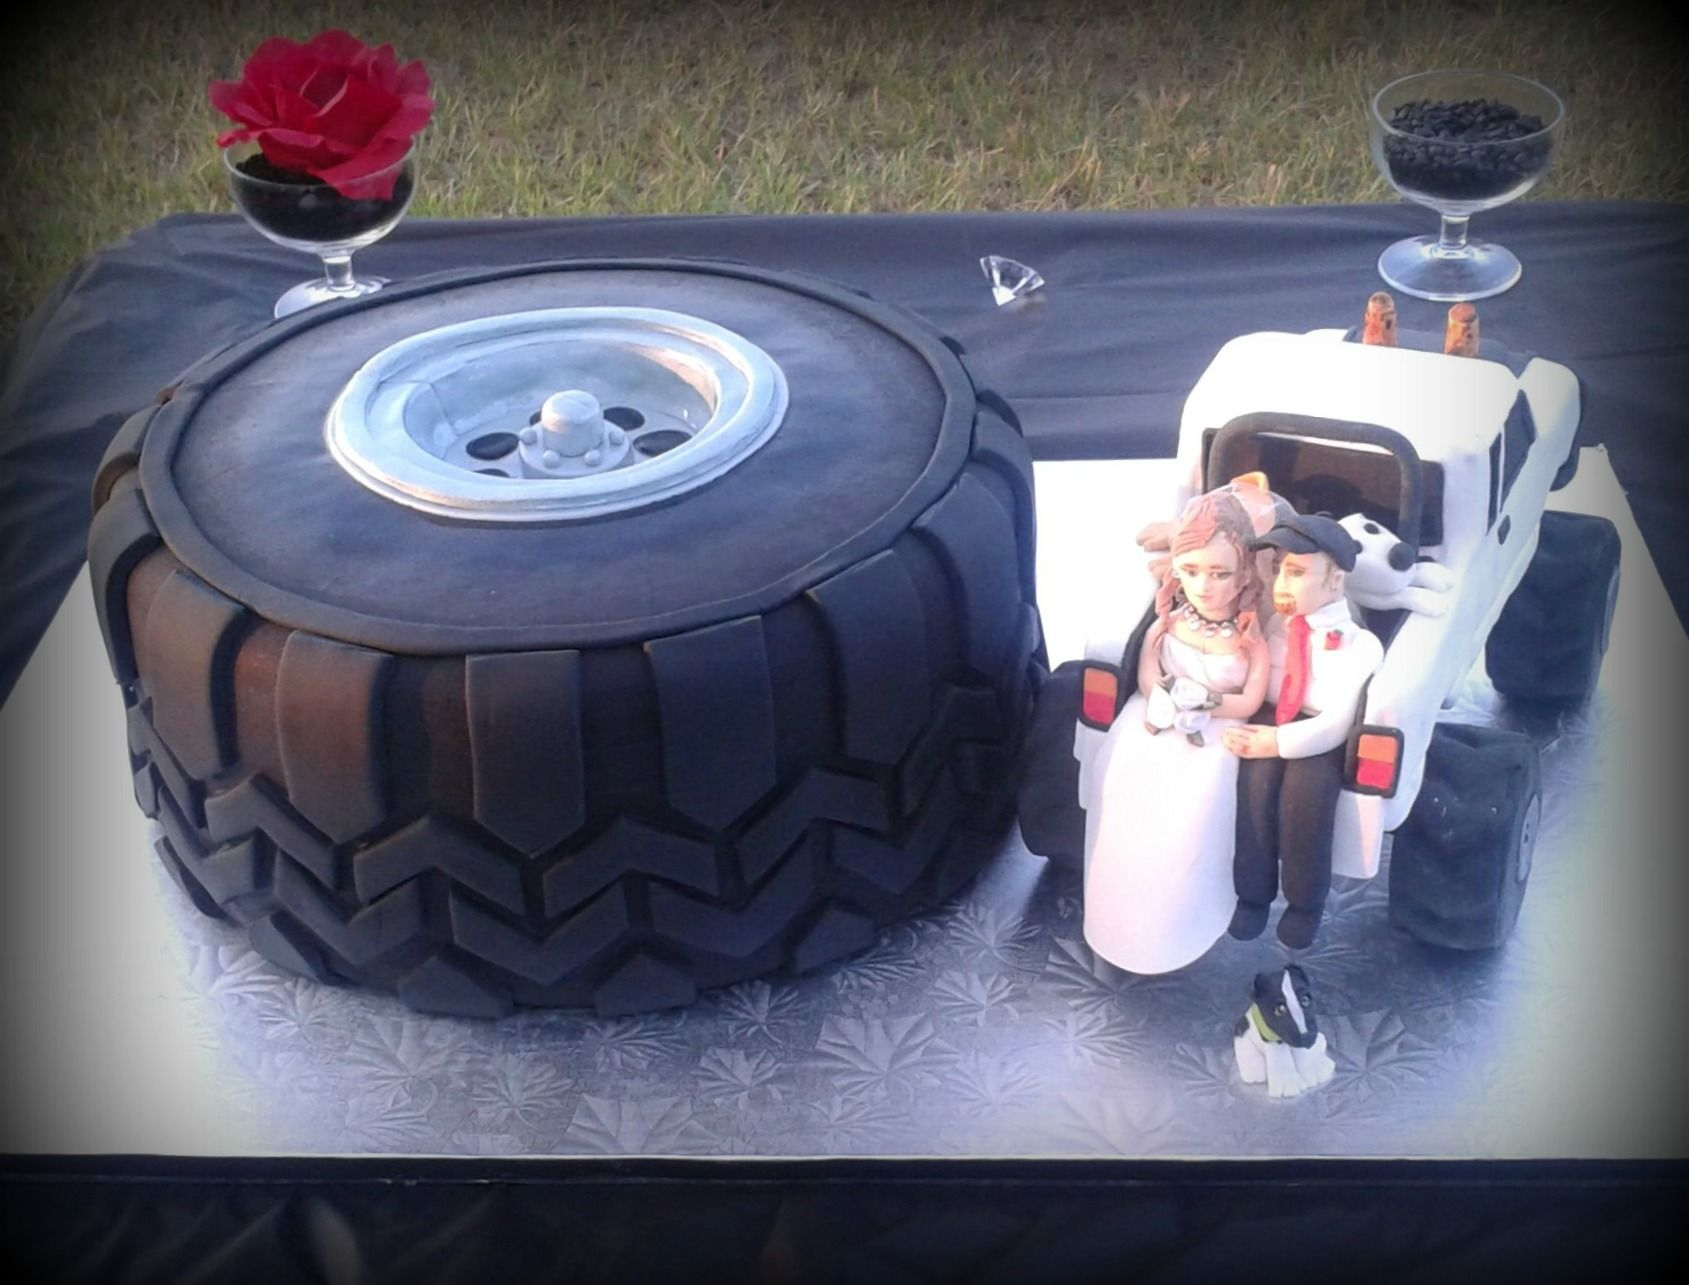 mudding tire wedding rings mud tire double 12 chocolate cake with cookies cream download - Mud Tire Wedding Rings